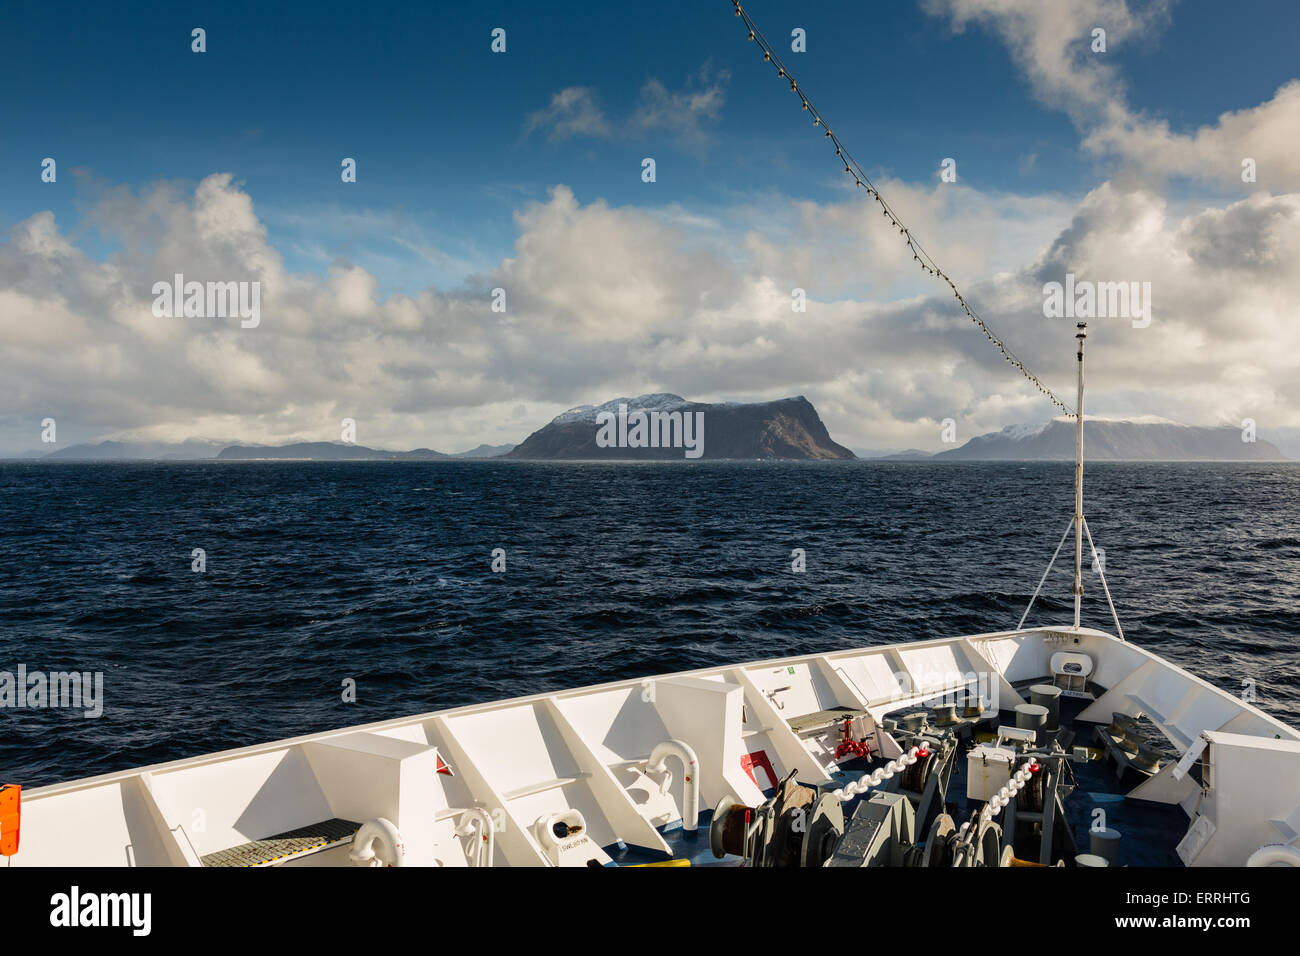 Arriving at Alesund in Norway on board ship MV Azores - Stock Image